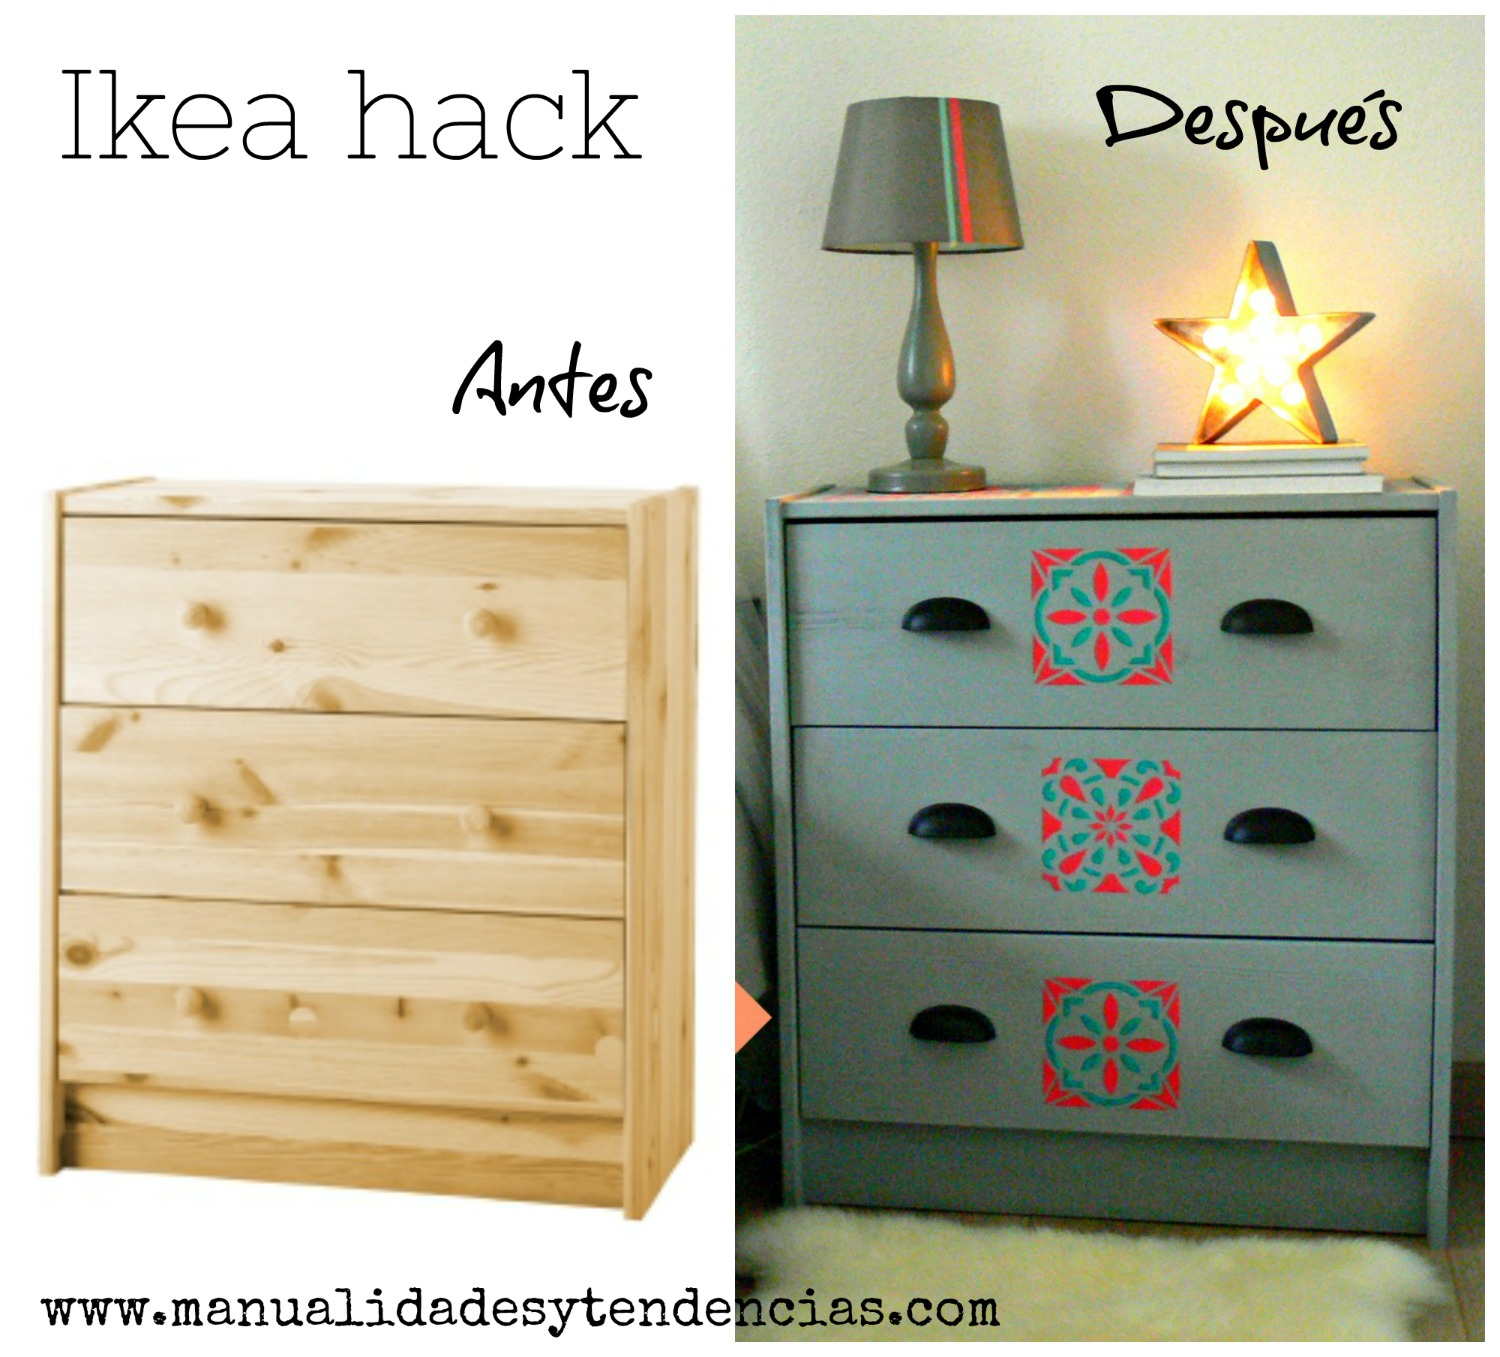 Ikea hack c moda rast handbox craft lovers comunidad - Mueble cajonera ikea ...